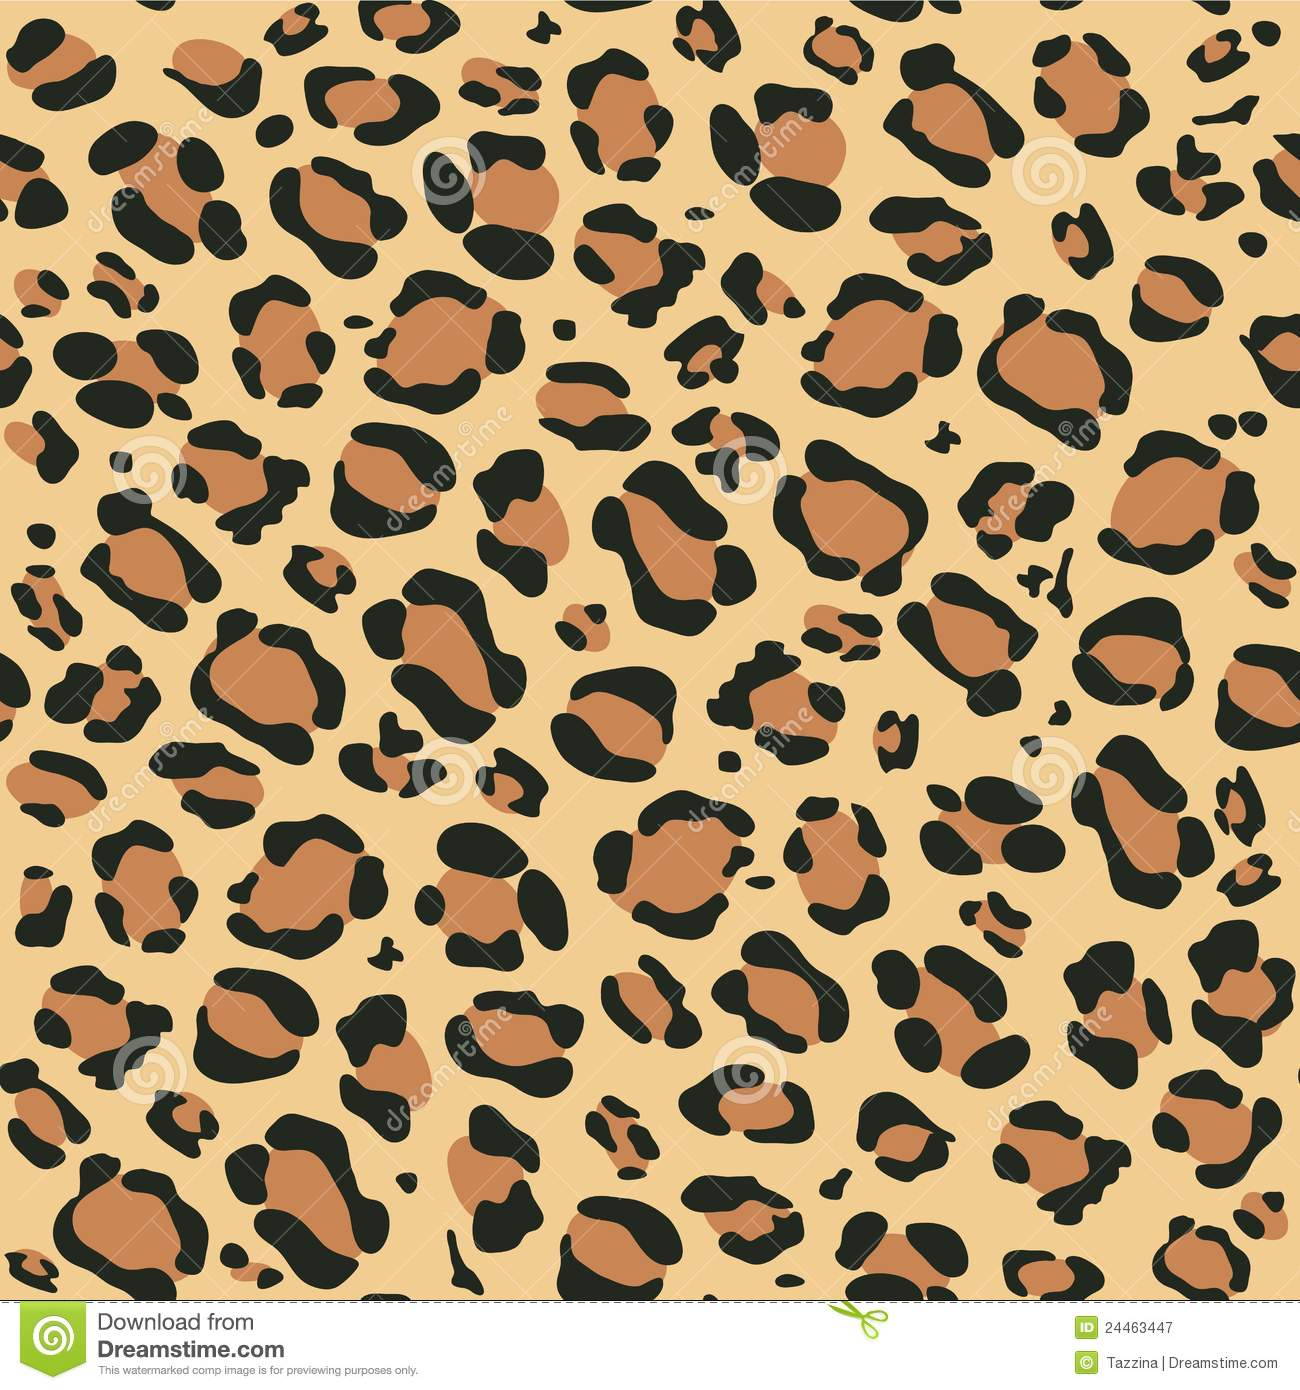 Black Plaid Wallpaper Leopard Pattern Royalty Free Stock Photography Image